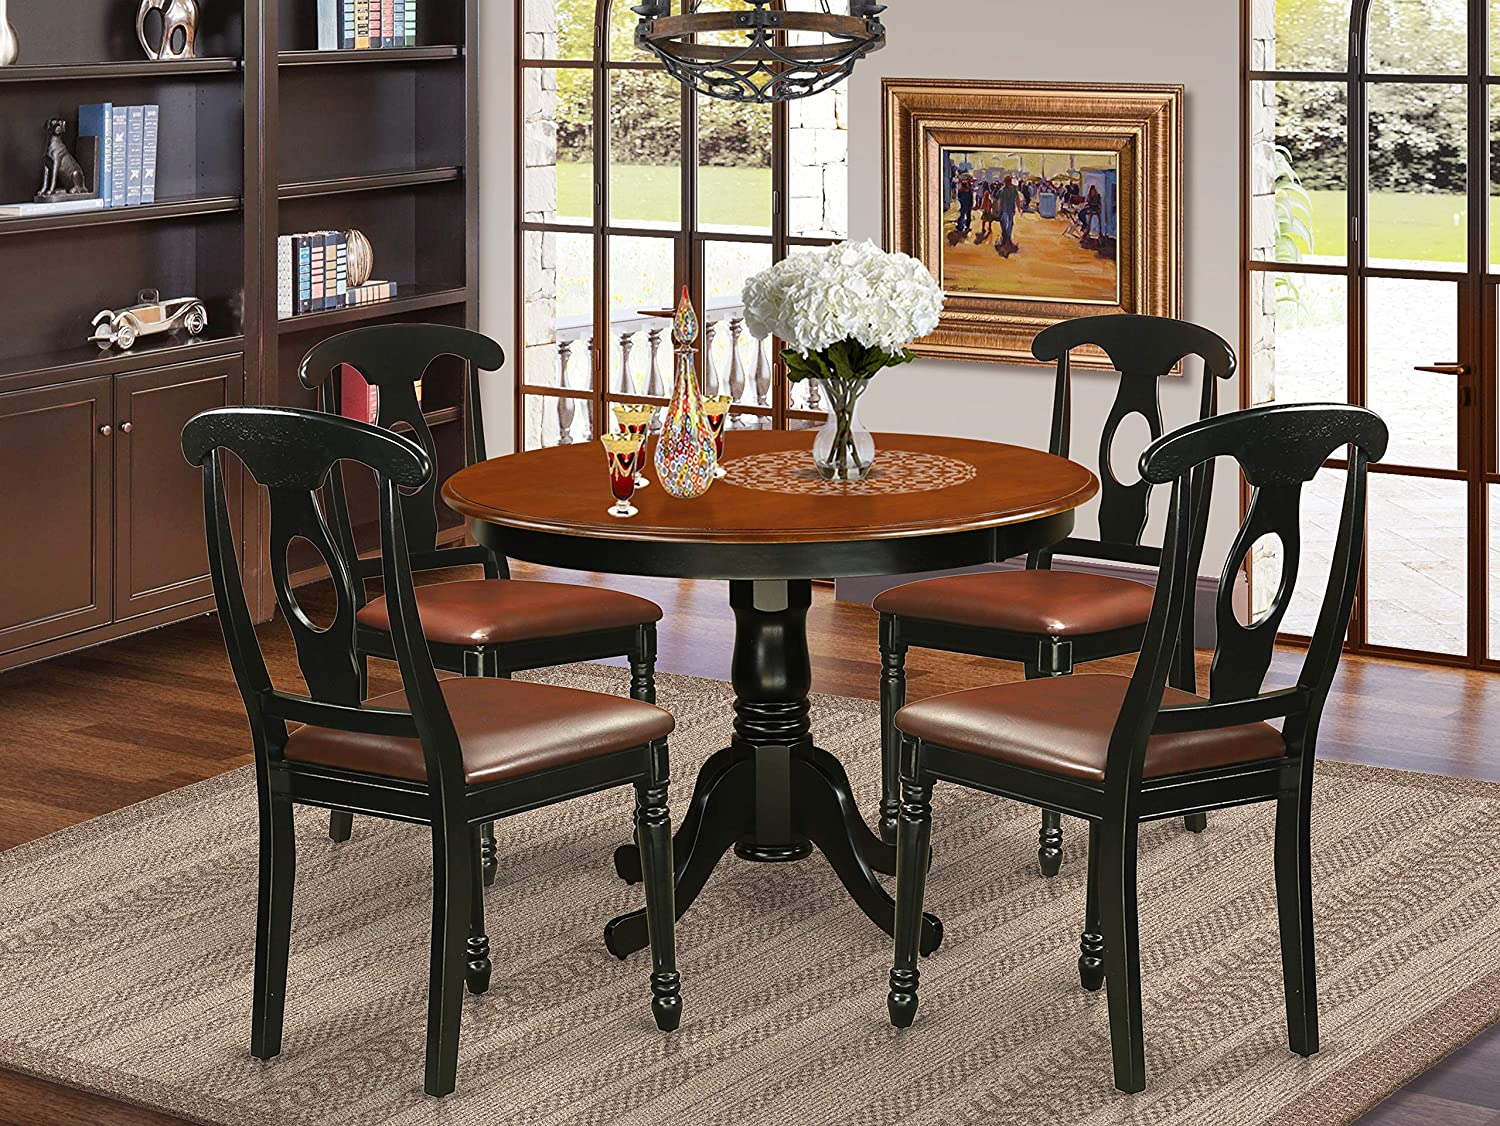 Amazon Com 5 Pc Set With A Round Kitchen Table And 4 Leather Dinette Chairs In Linen White Table Chair Sets